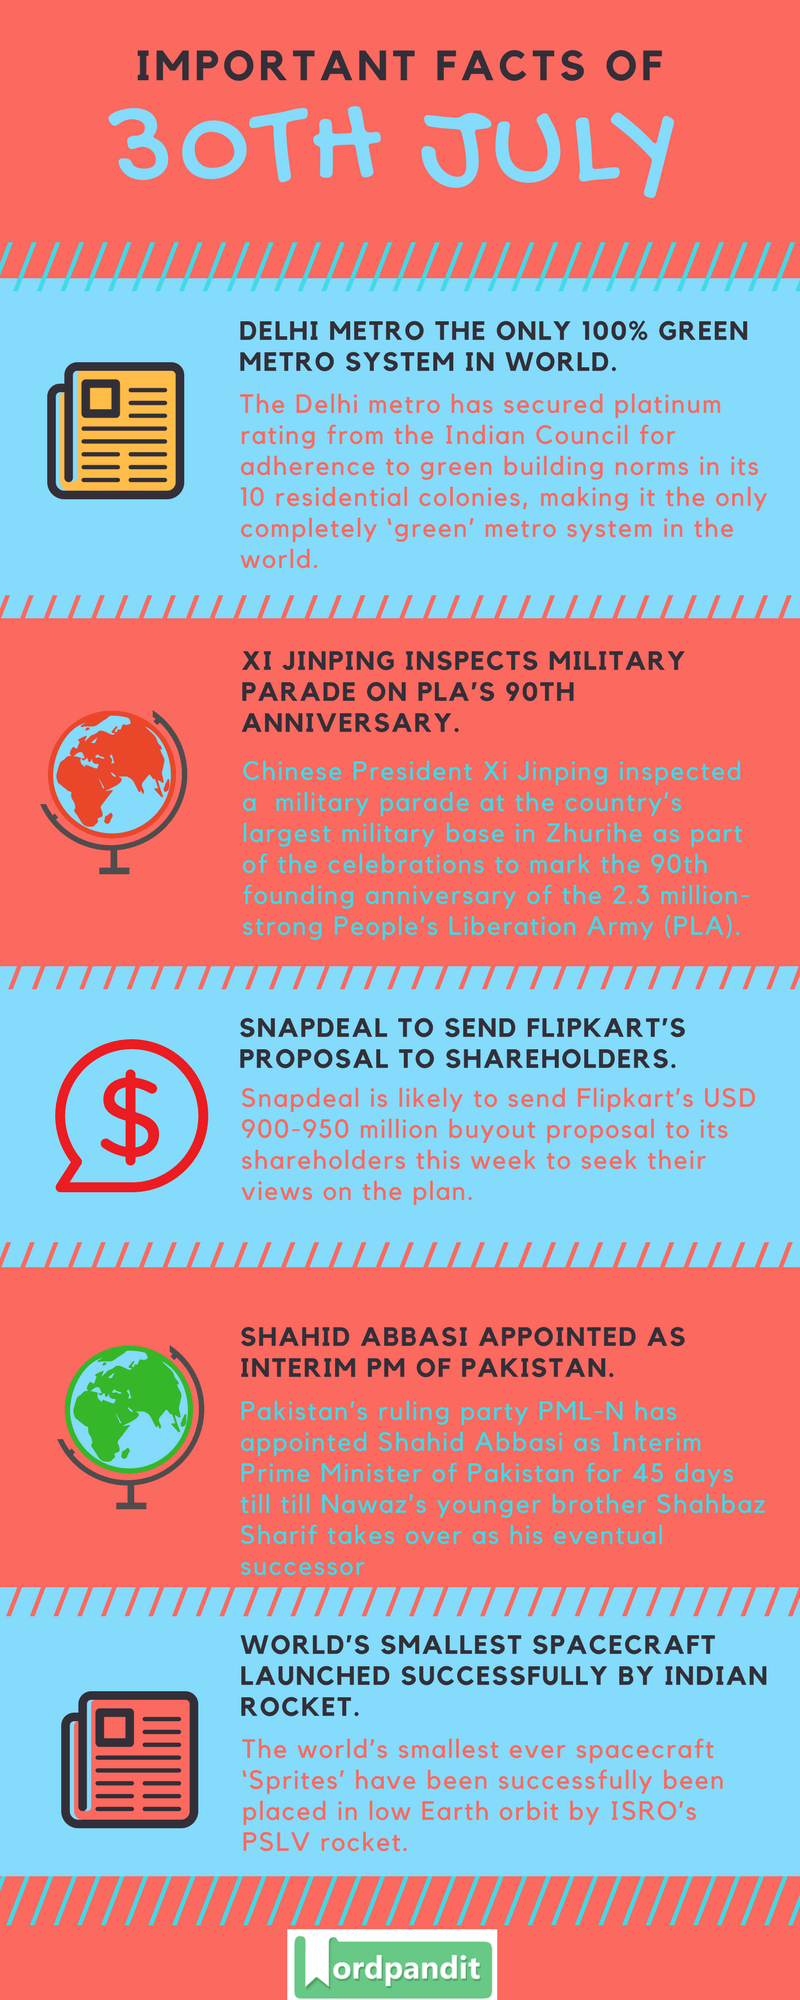 Daily-Current-Affairs-30-july-2017-Current-Affairs-Quiz-july-28-2017-Current-Affairs-Infographic